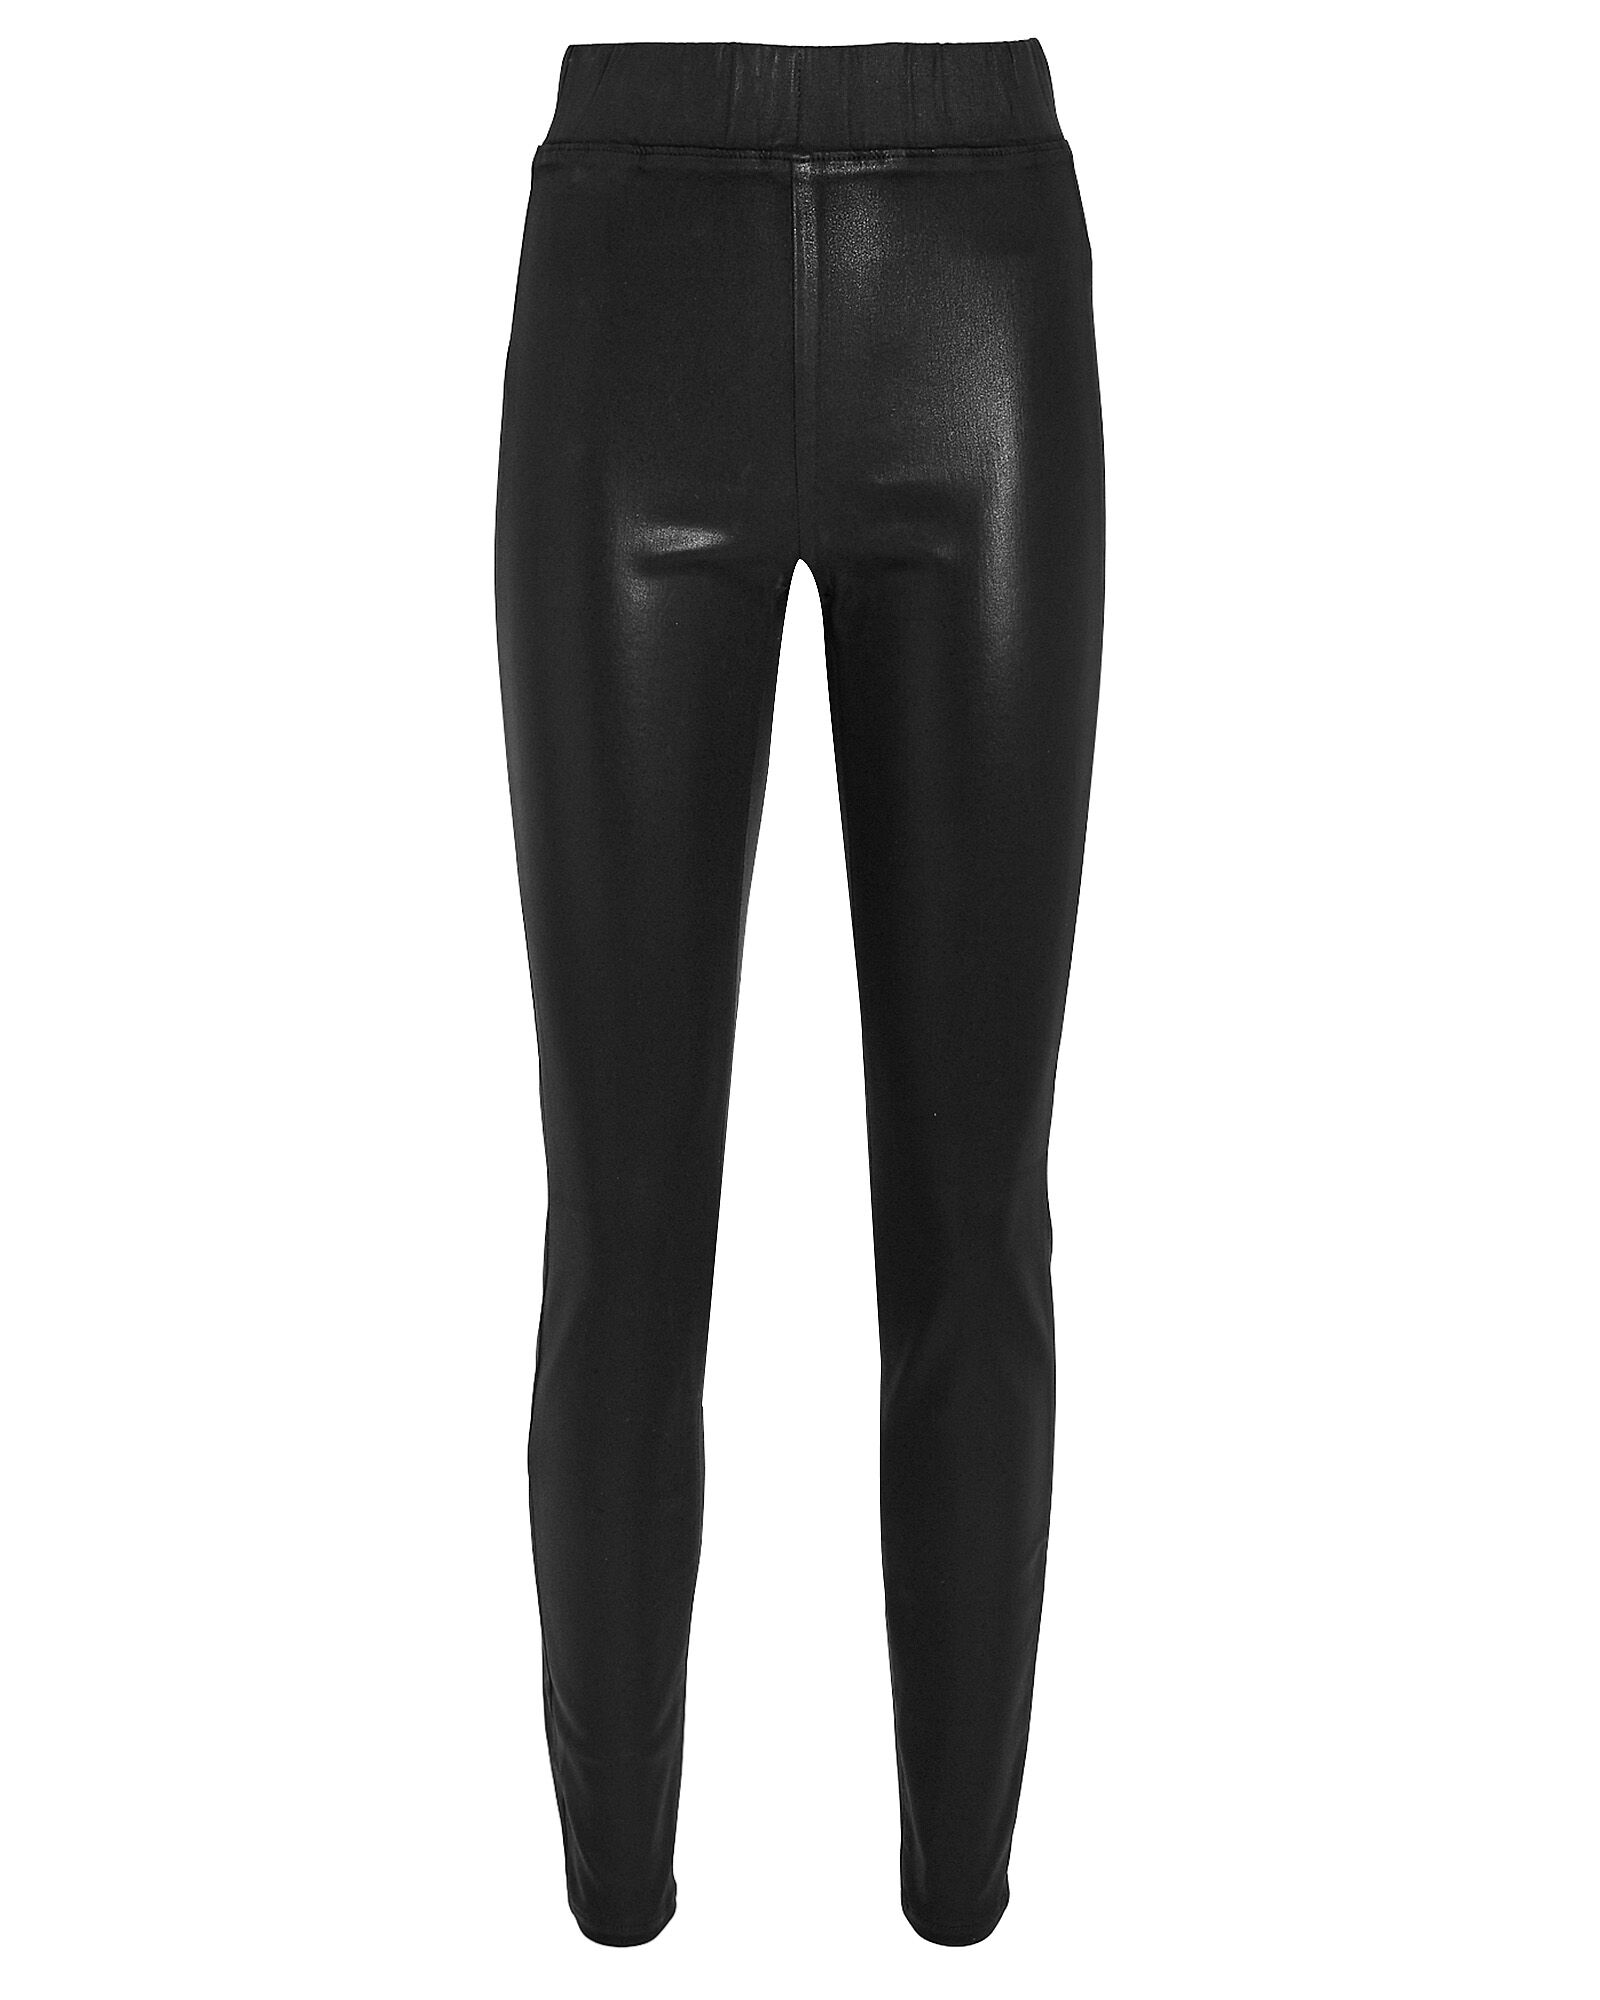 Rochelle Coated High-Rise Leggings, BLACK, hi-res